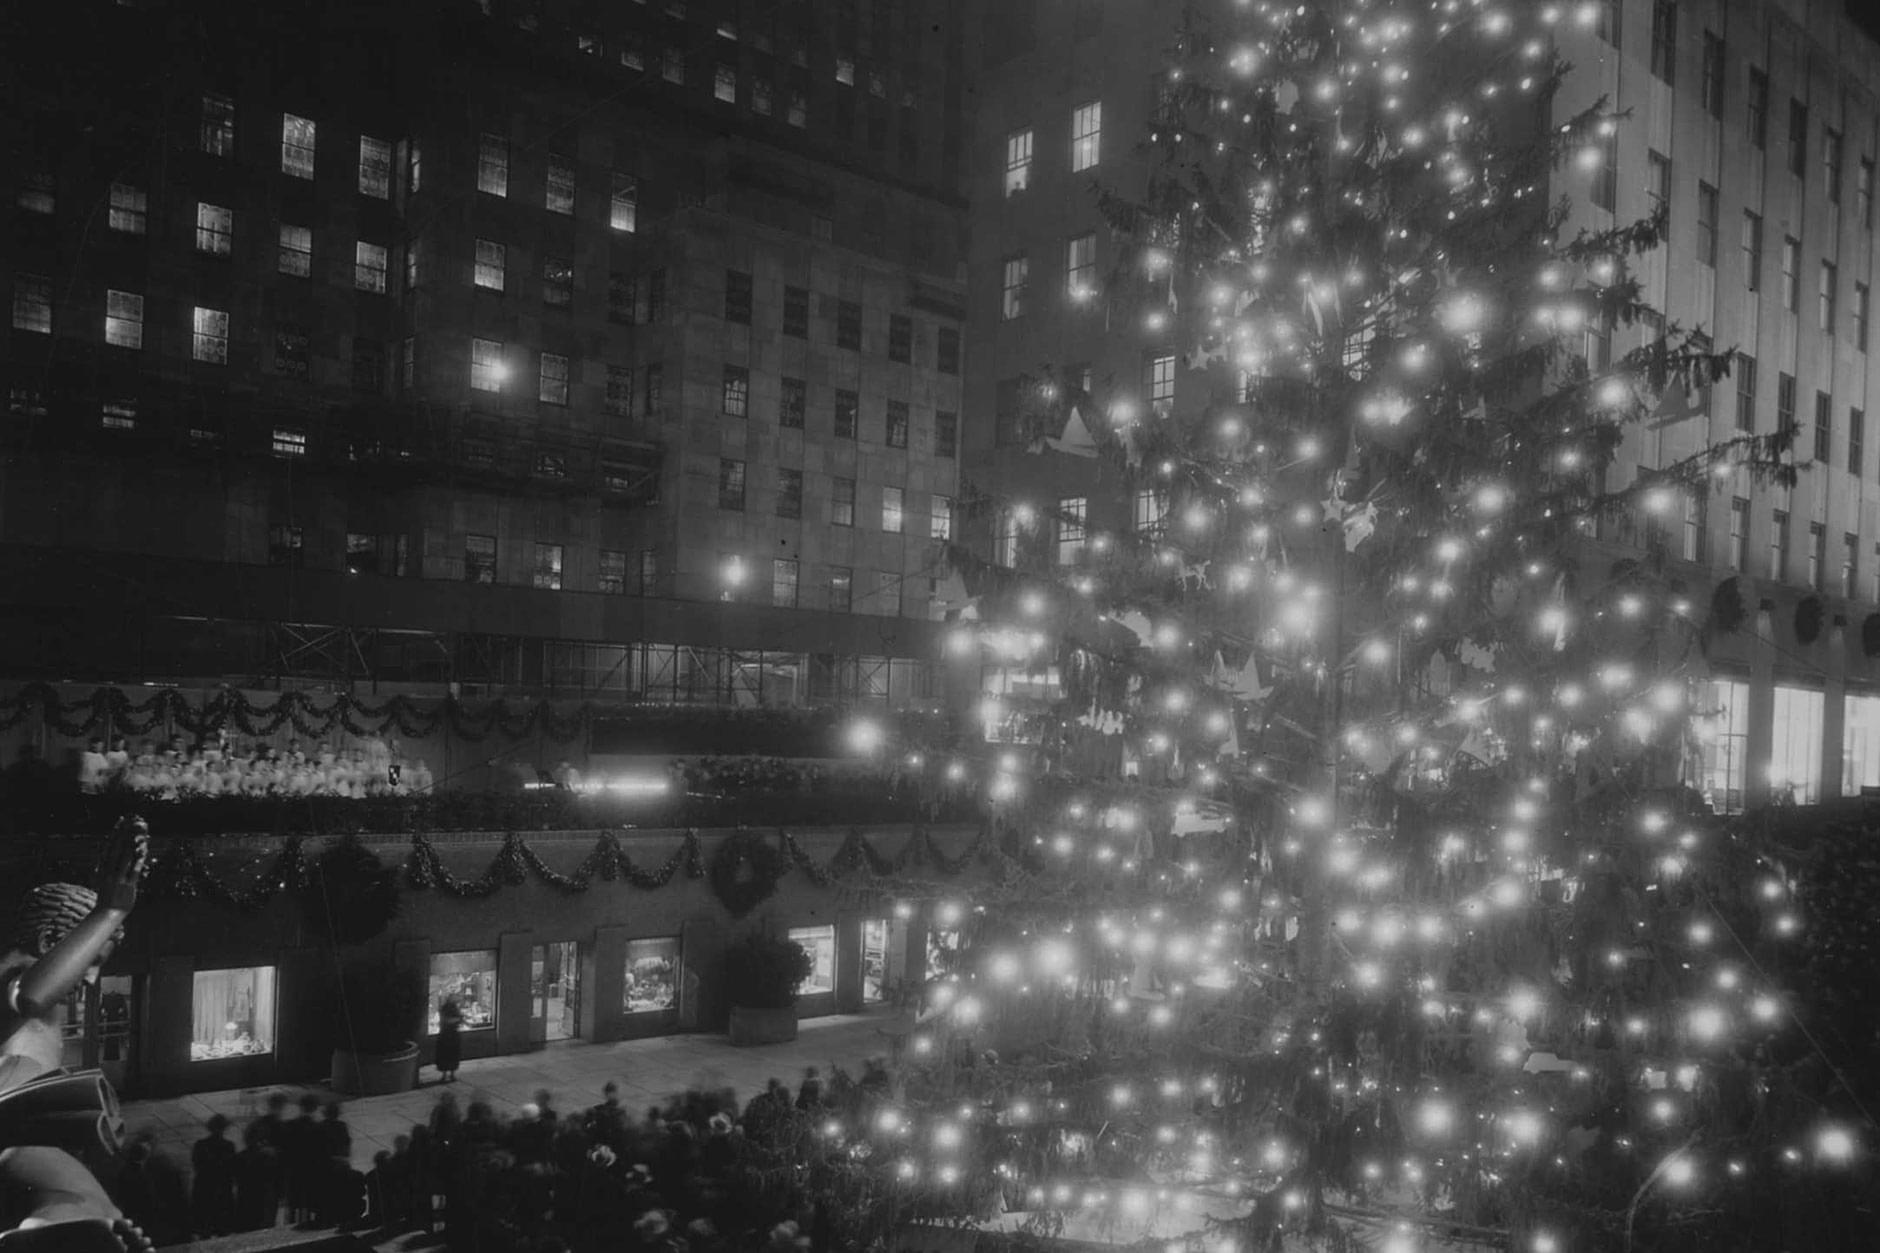 Rockefeller Center Christmas Tree Lighting | NYC Winter Events